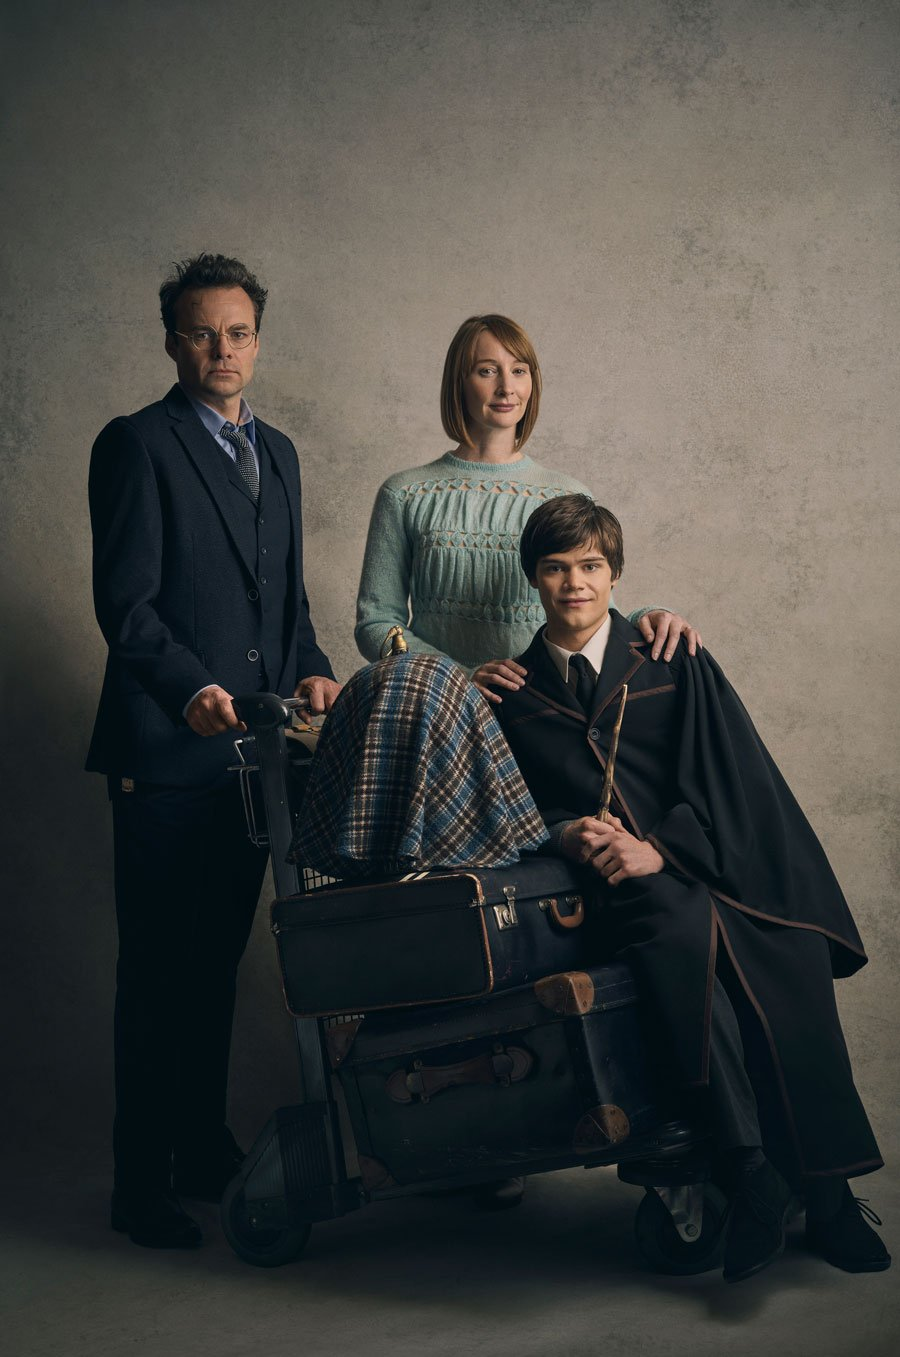 Harry Potter and the Cursed Child new cast portraits - May 2017